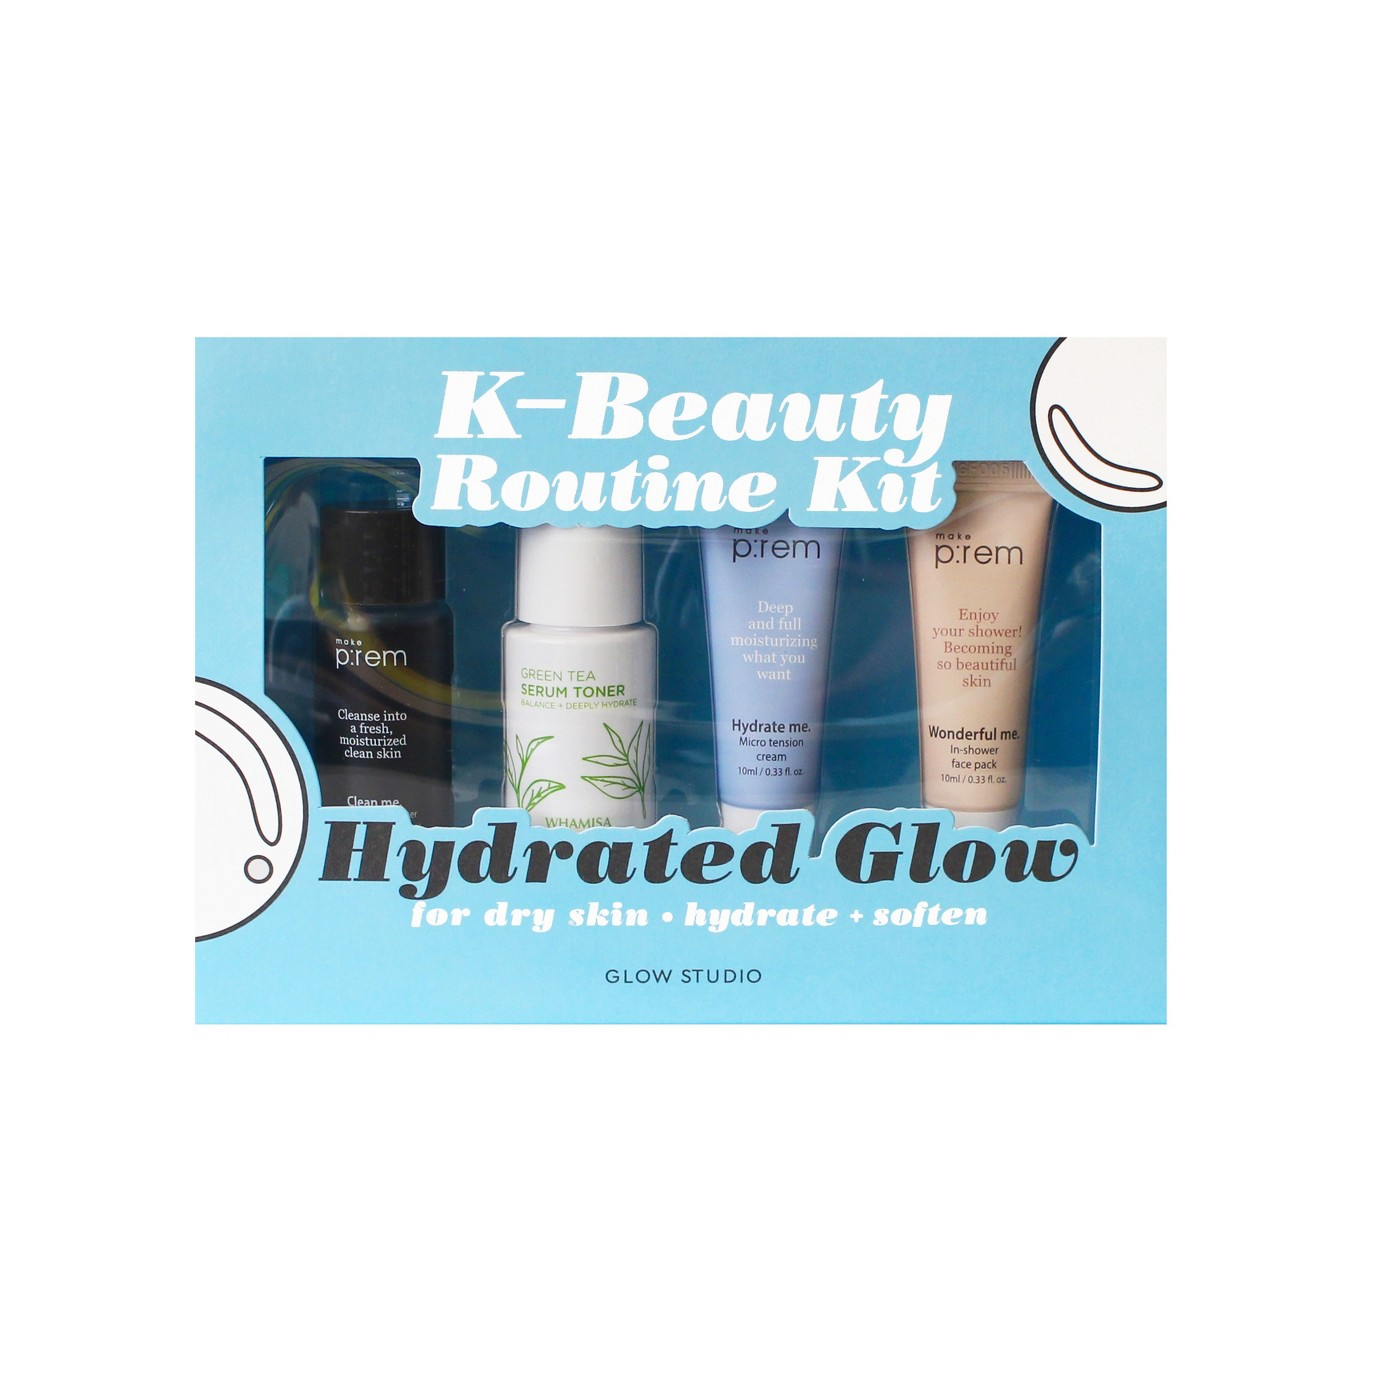 Hydrated Glow Routine Kit